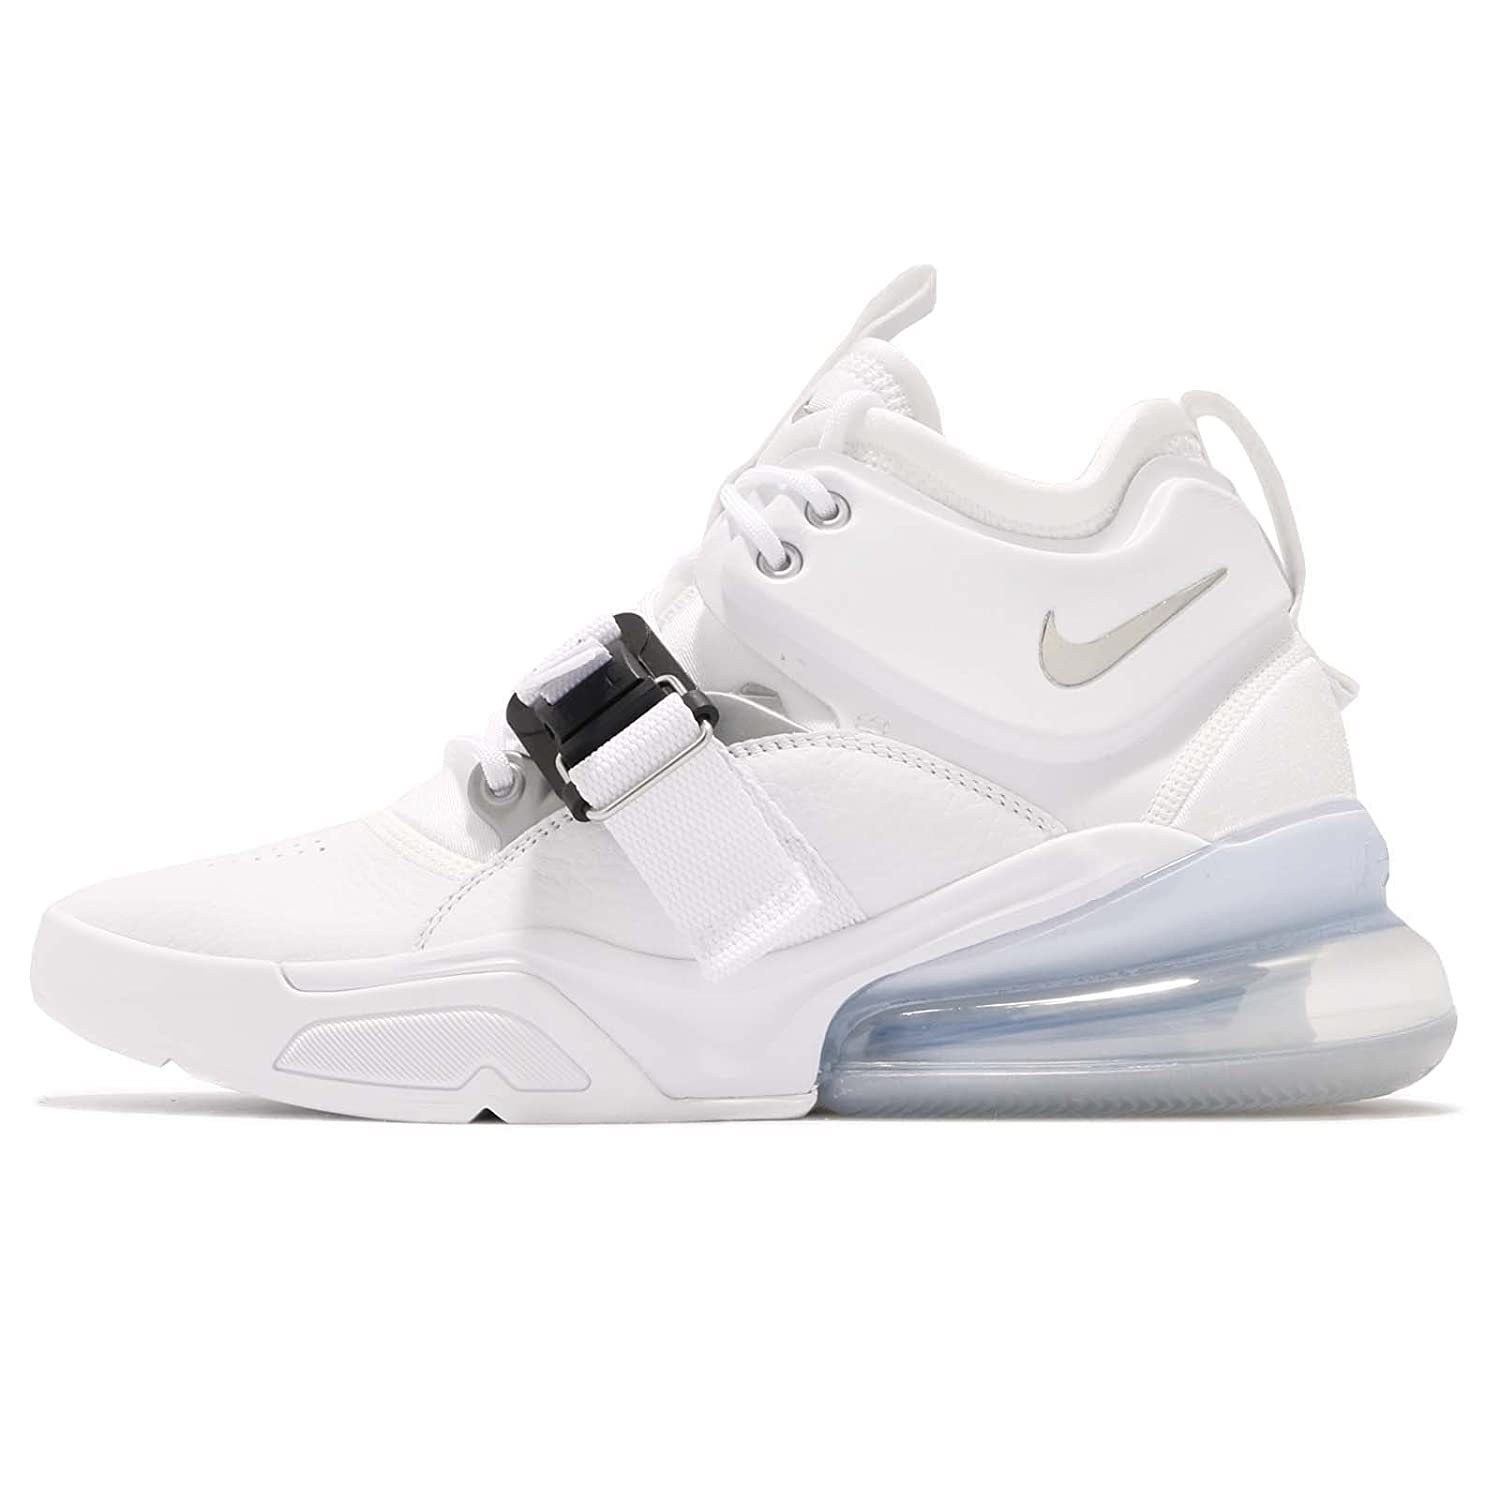 promo code 87473 5cade Amazon.com   Nike Air Force 270 Mens Ah6772-100 Size 14 White Metallic  Silver   Shoes